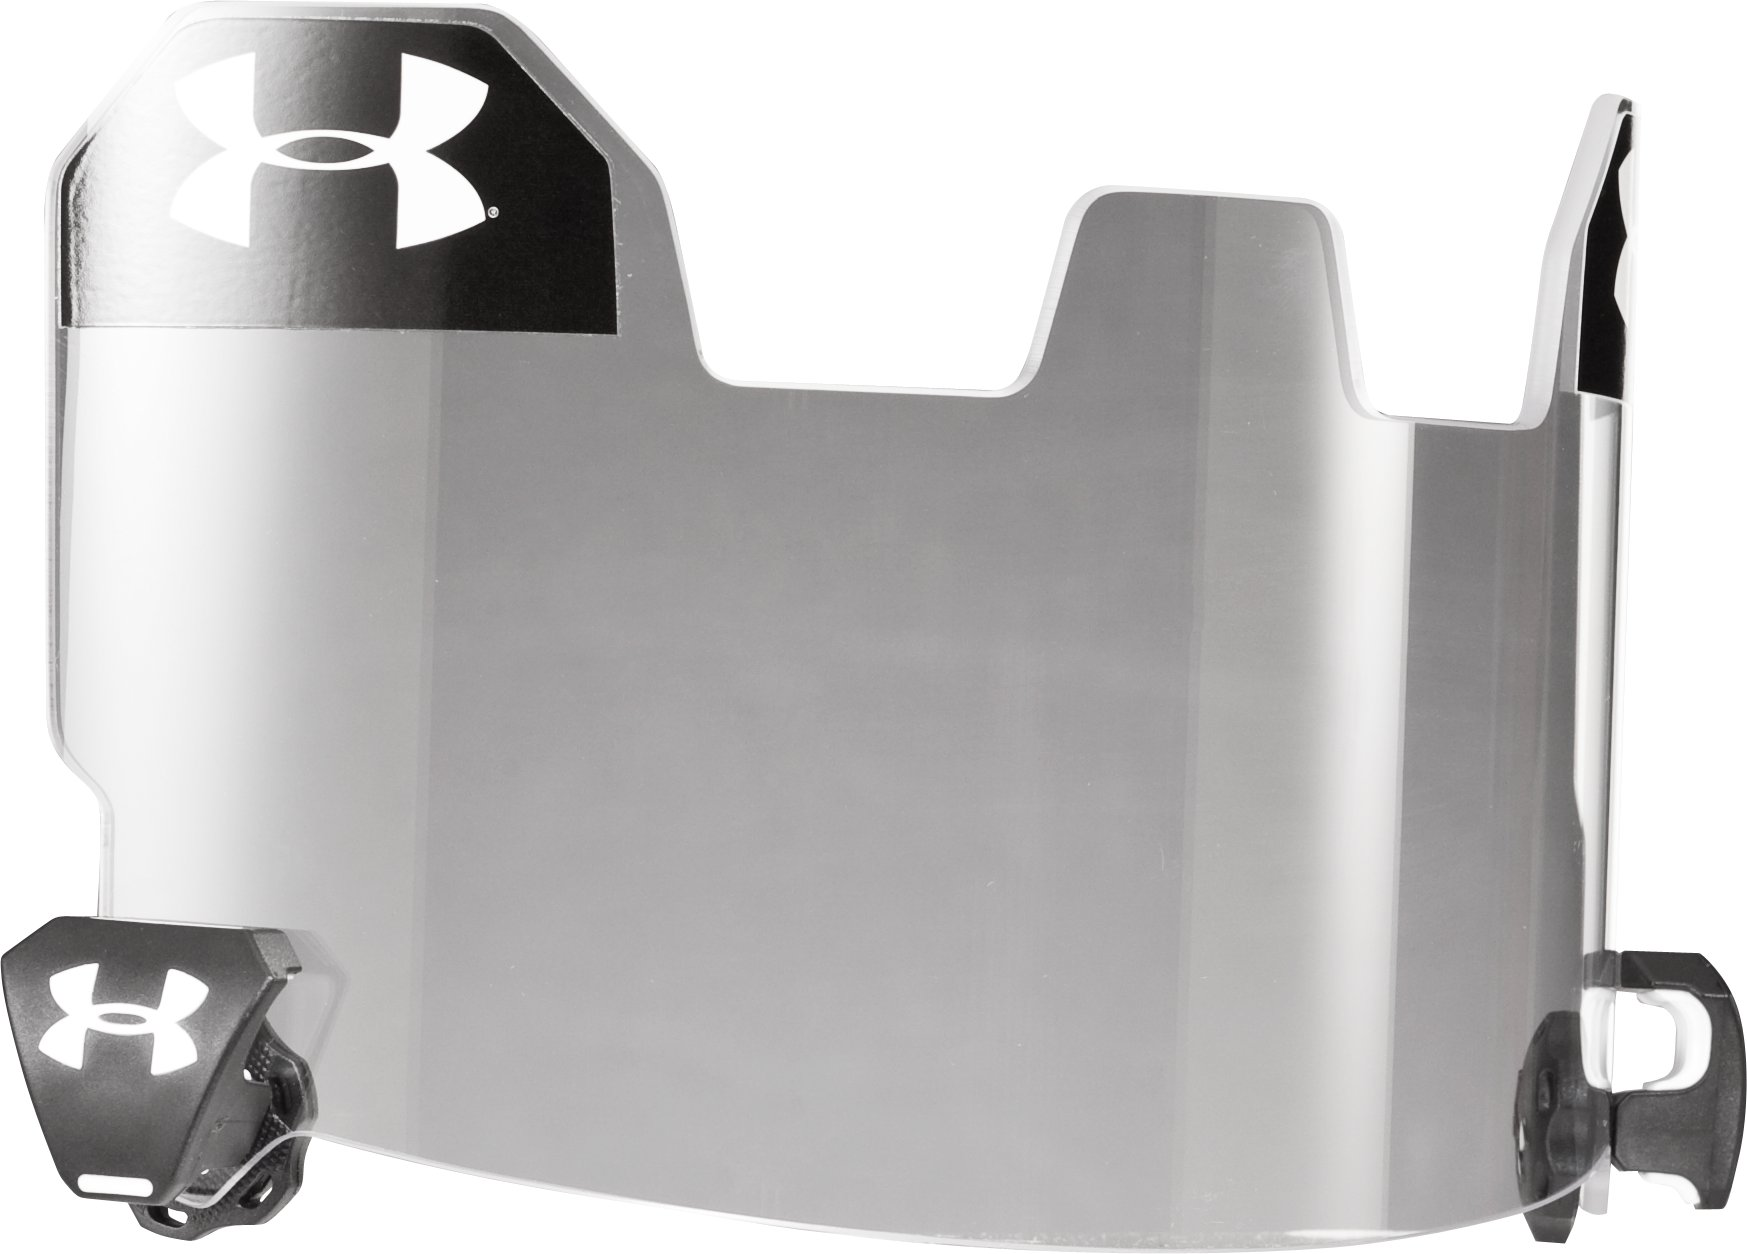 Under armour football visor - clear, , and more